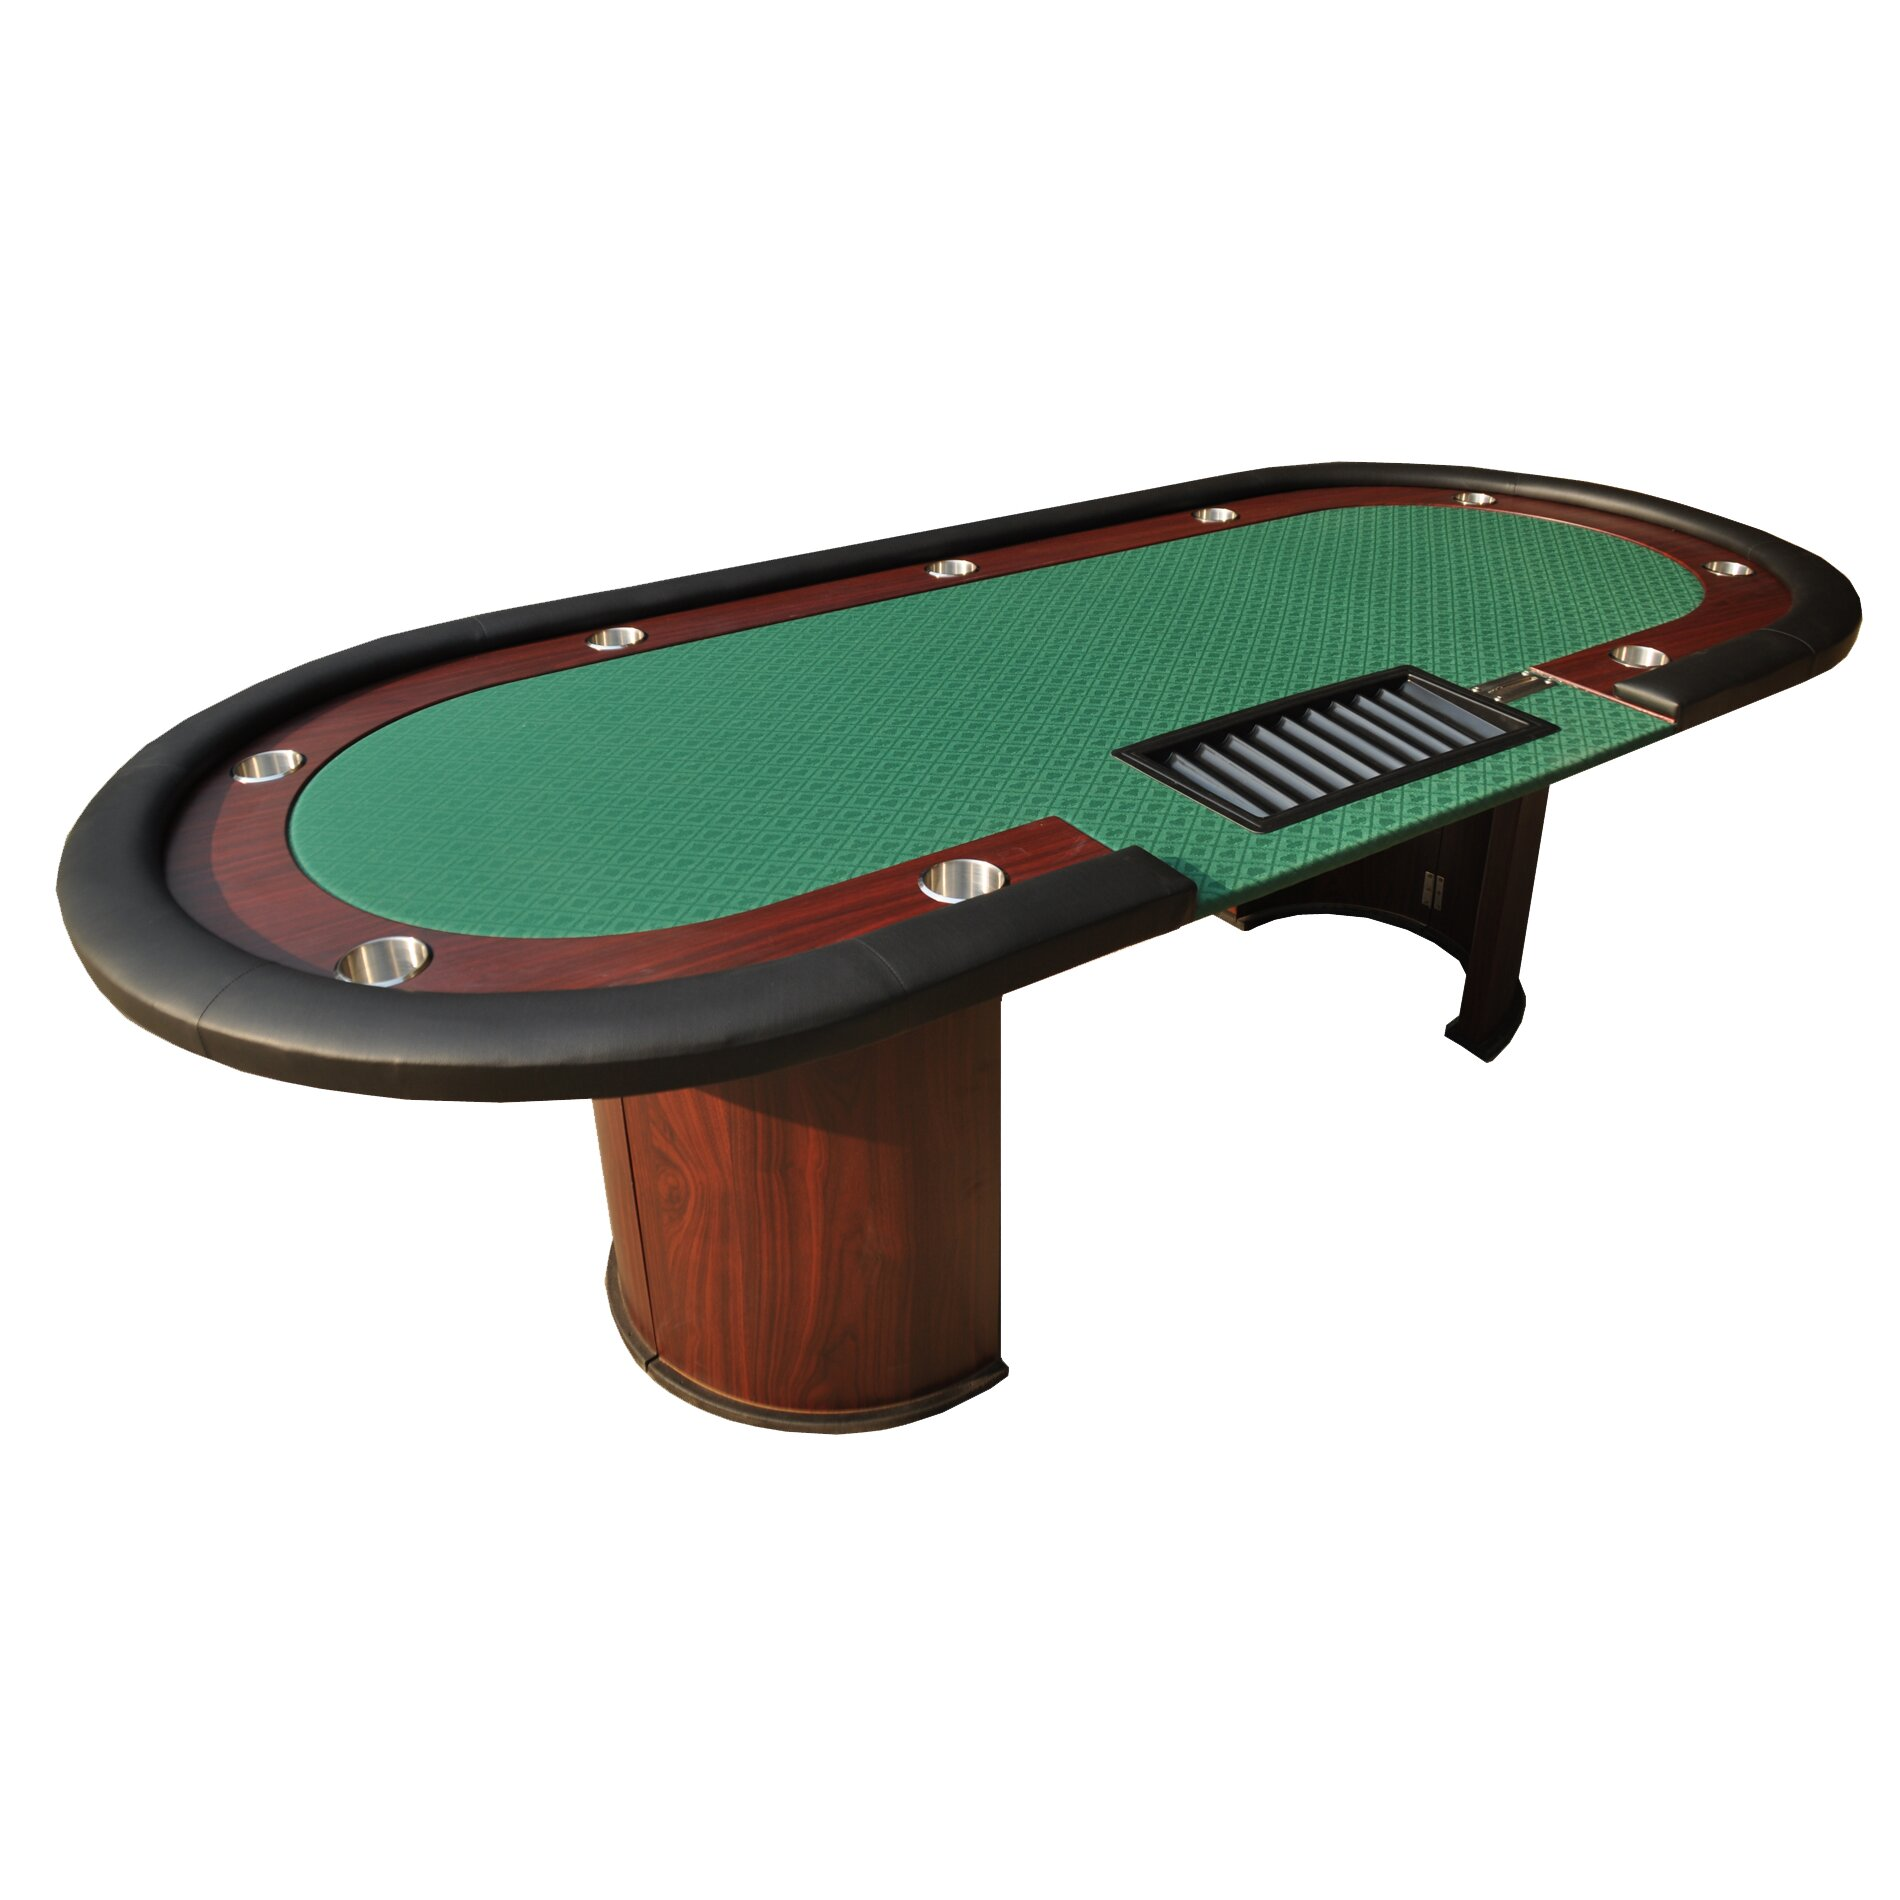 Texas holdem 10 player strategy